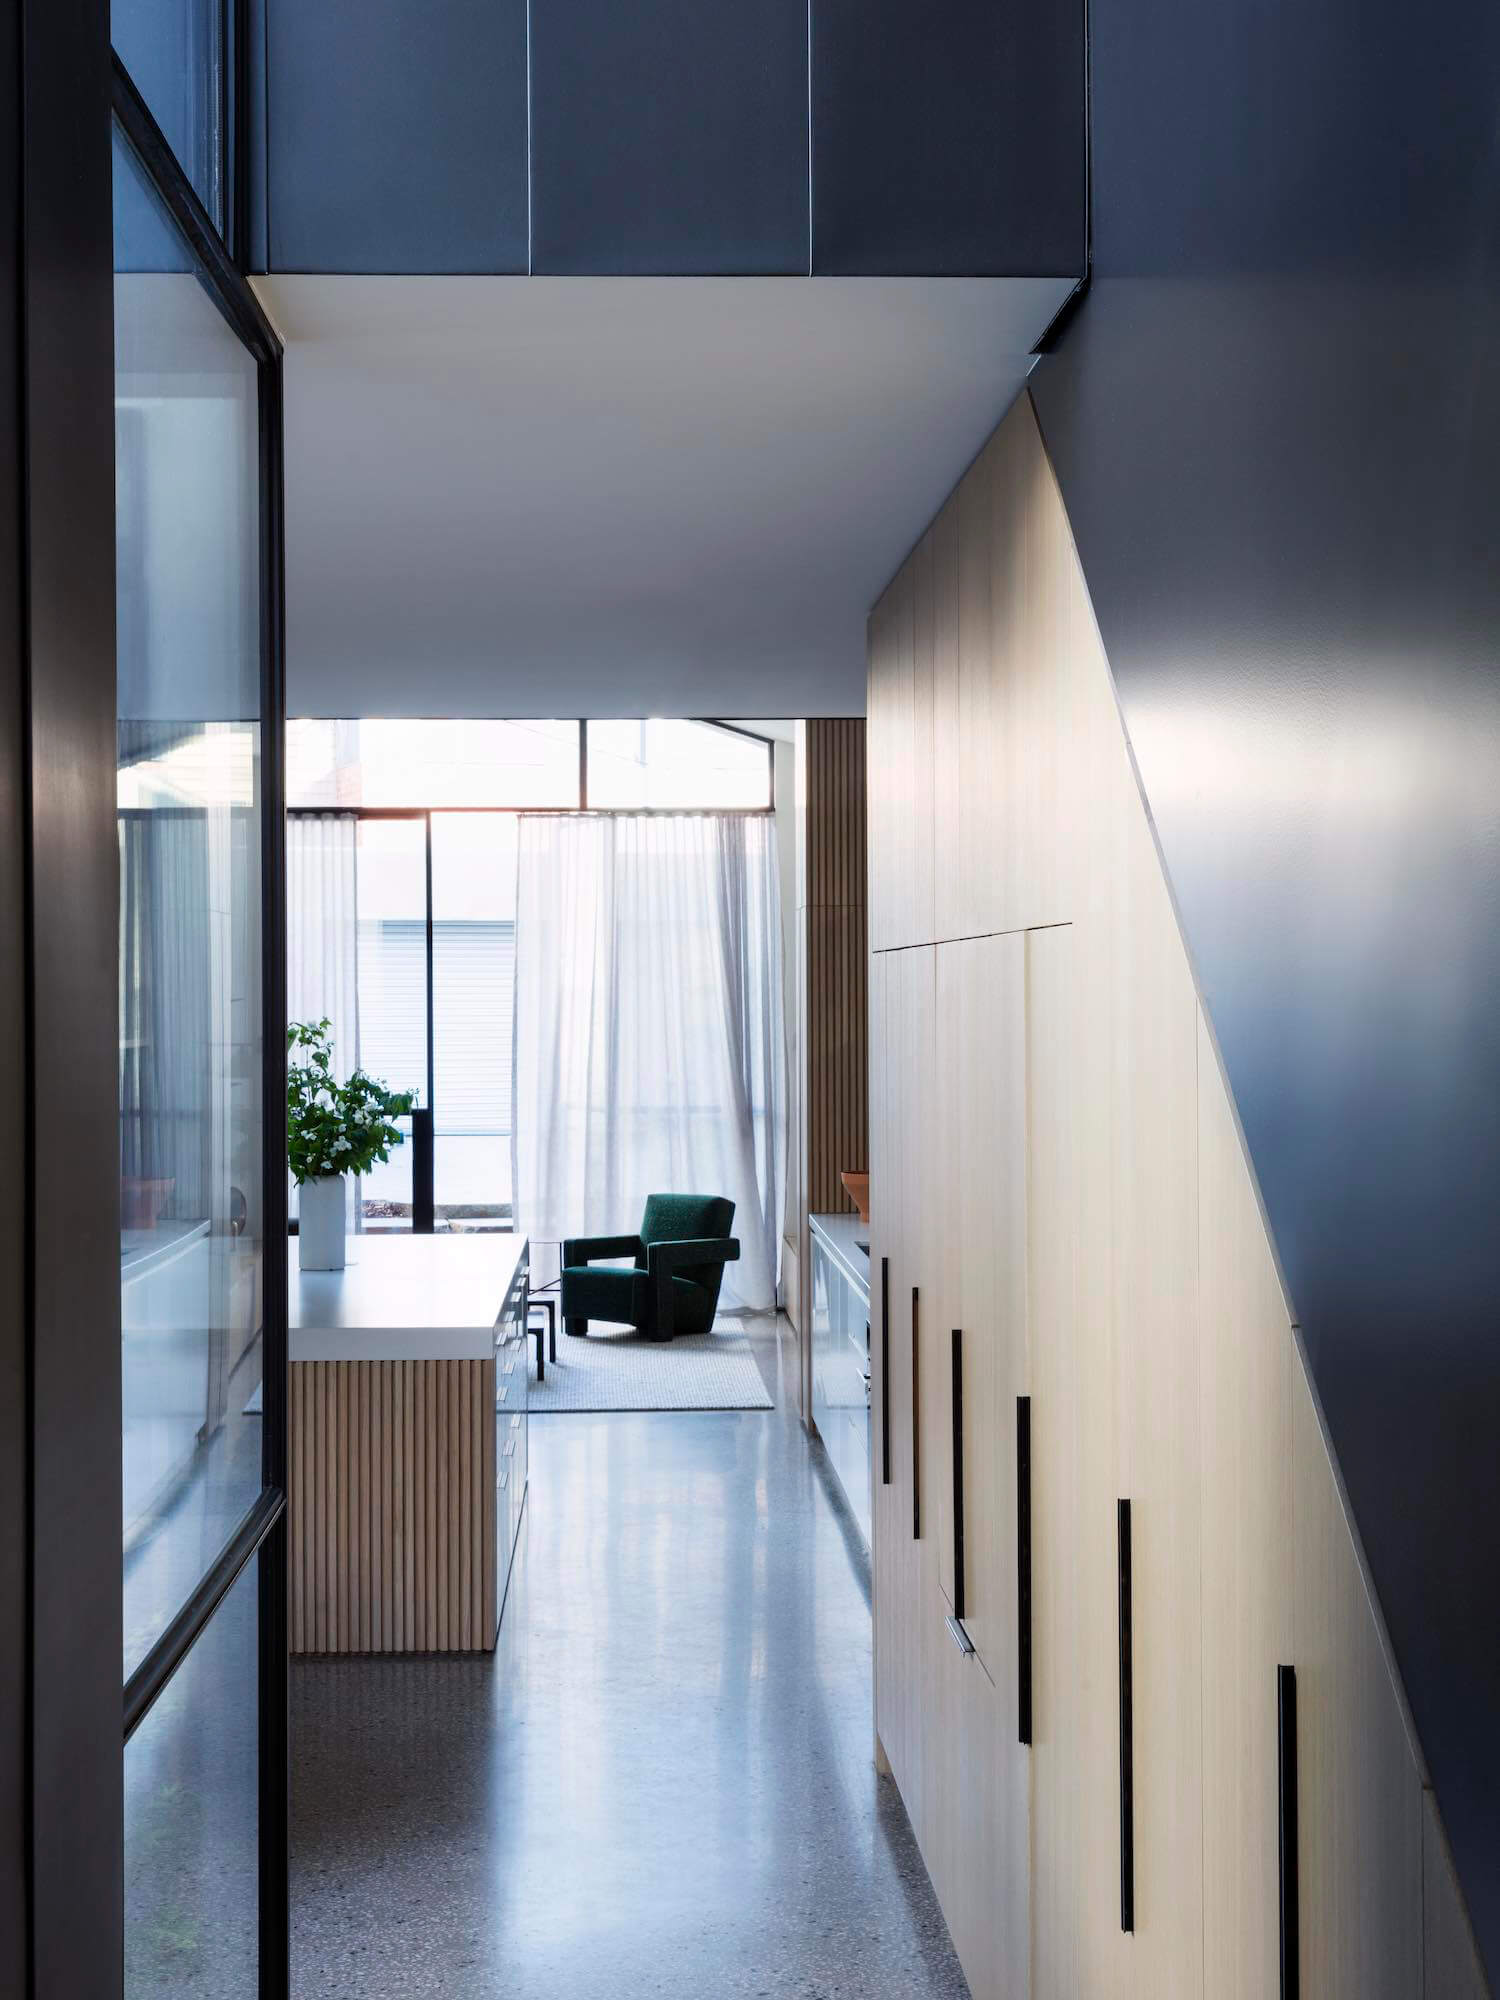 Est living port melbourne house pandolfini architects 11